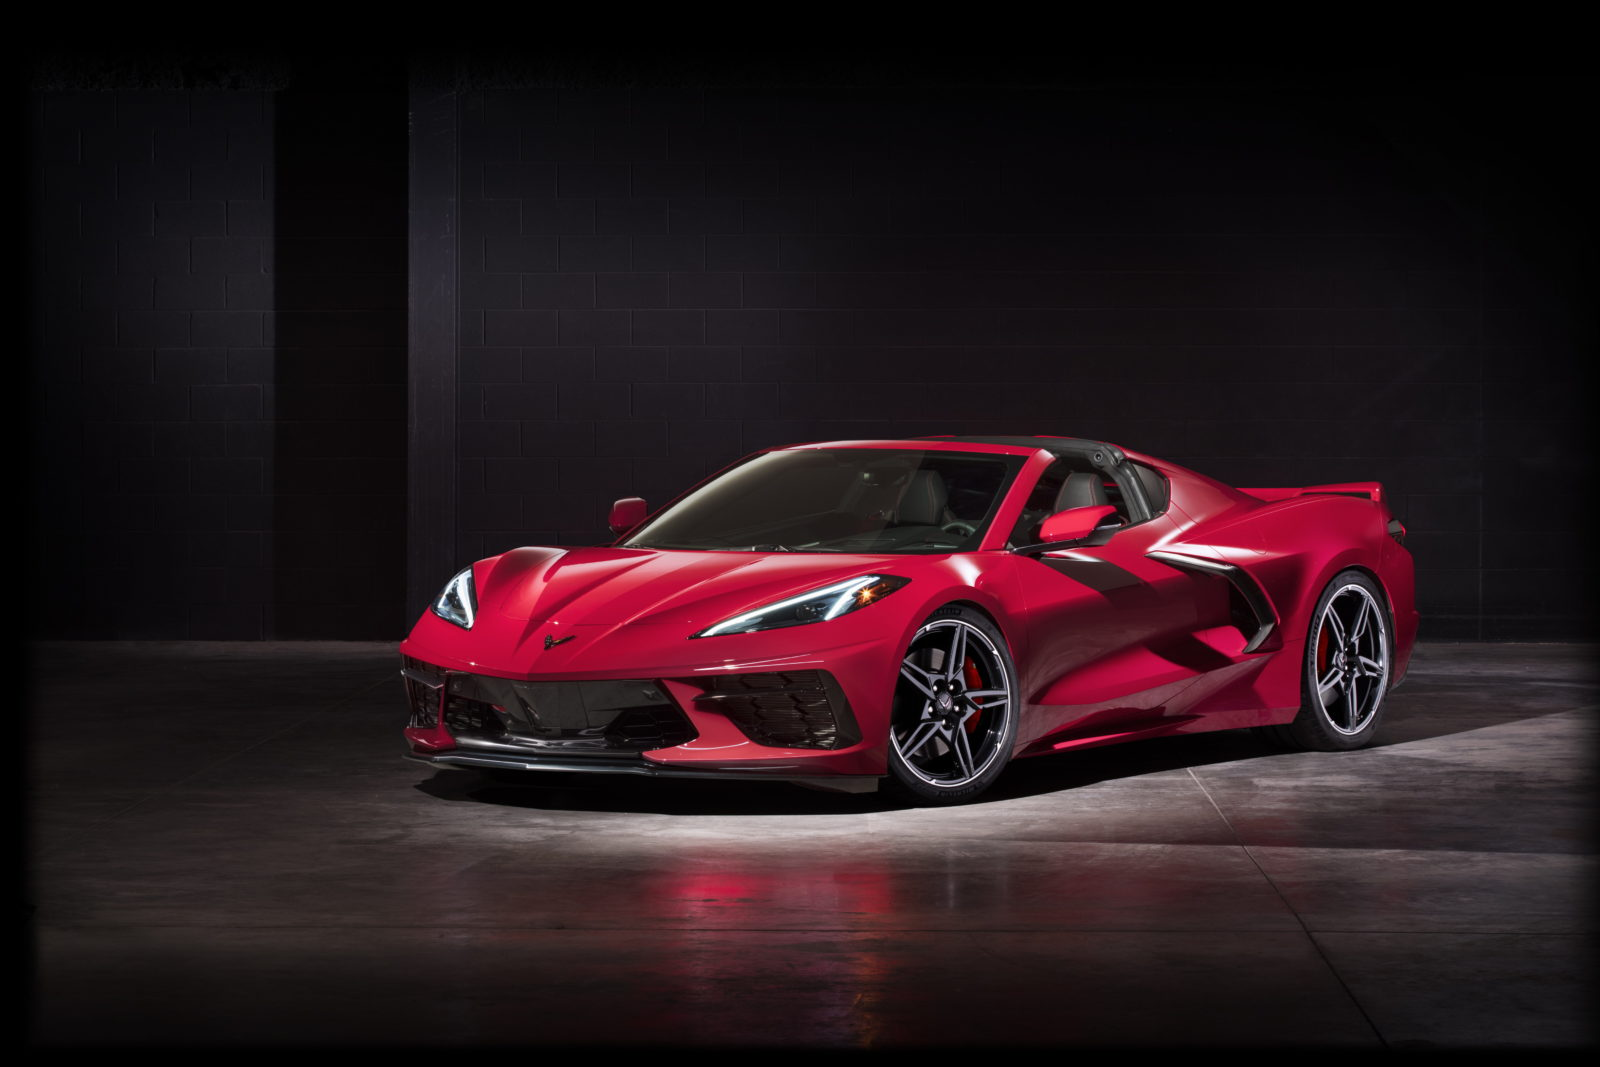 2020 Corvette Stingray C8 Pricing Announced